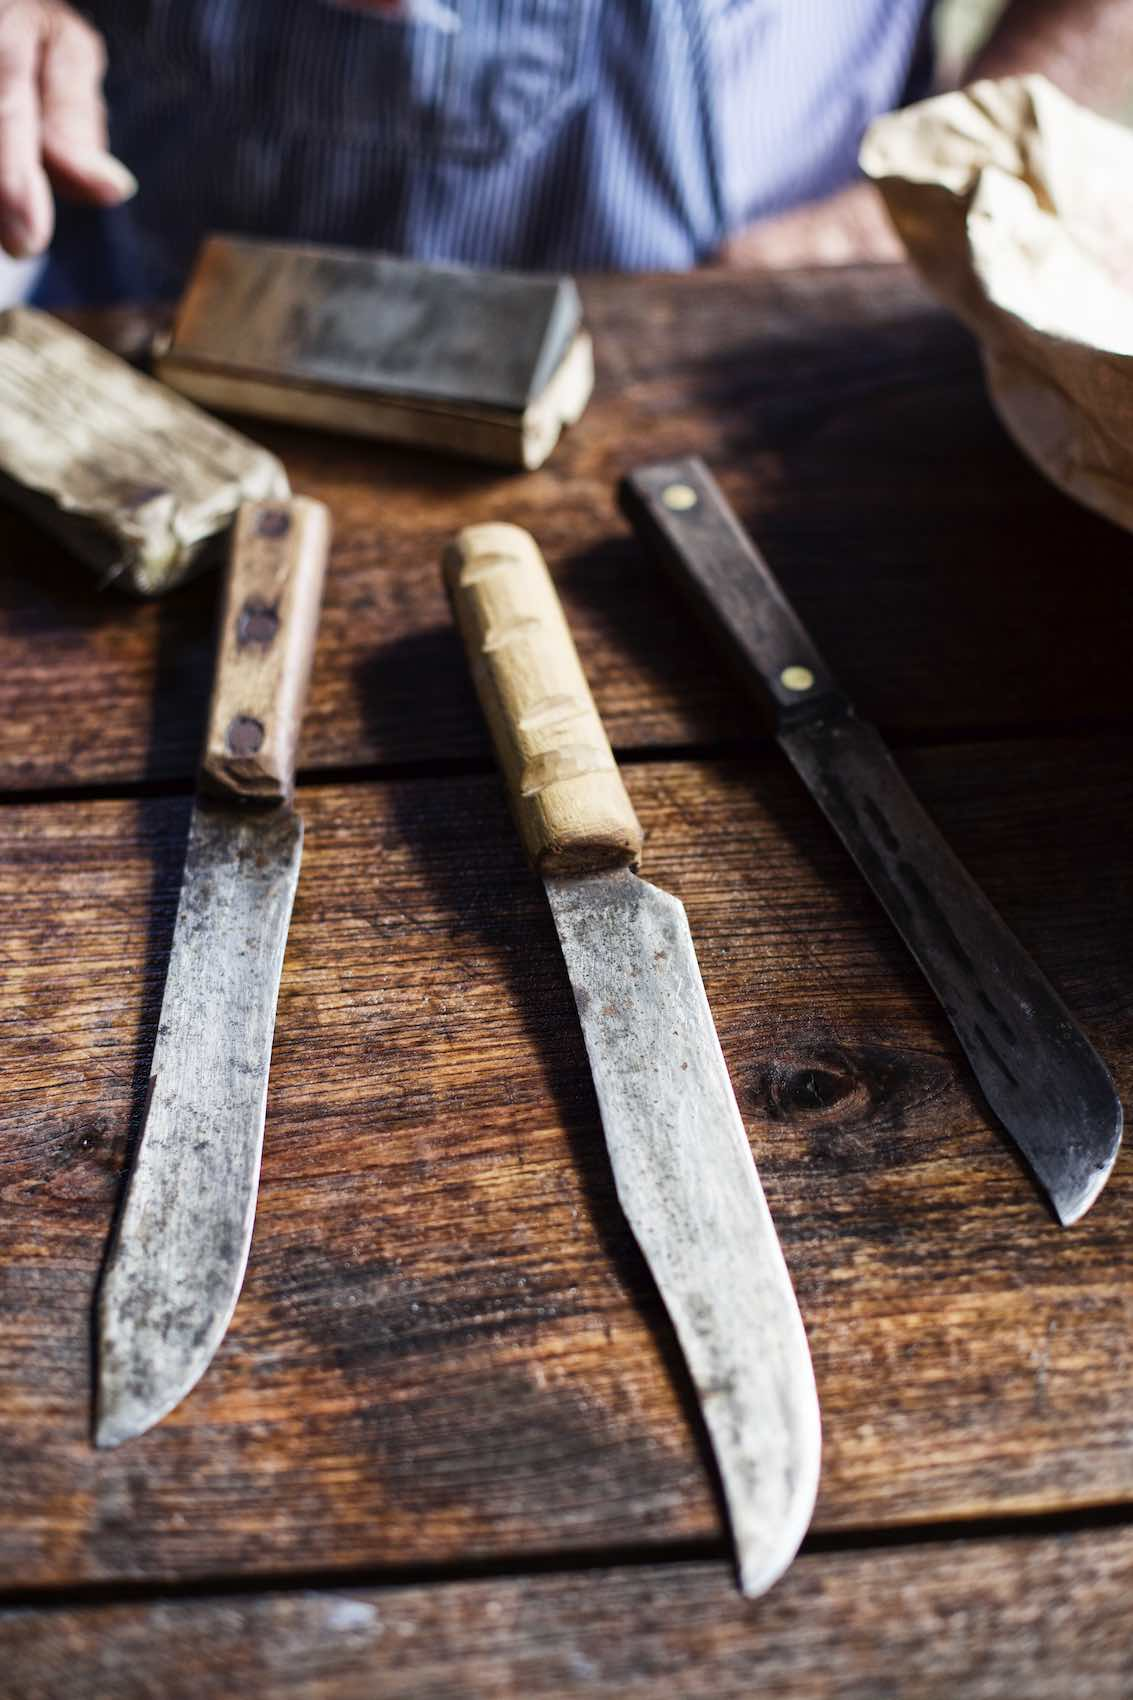 Jody Horton Photography - Assorted, rustic knives on wood table.